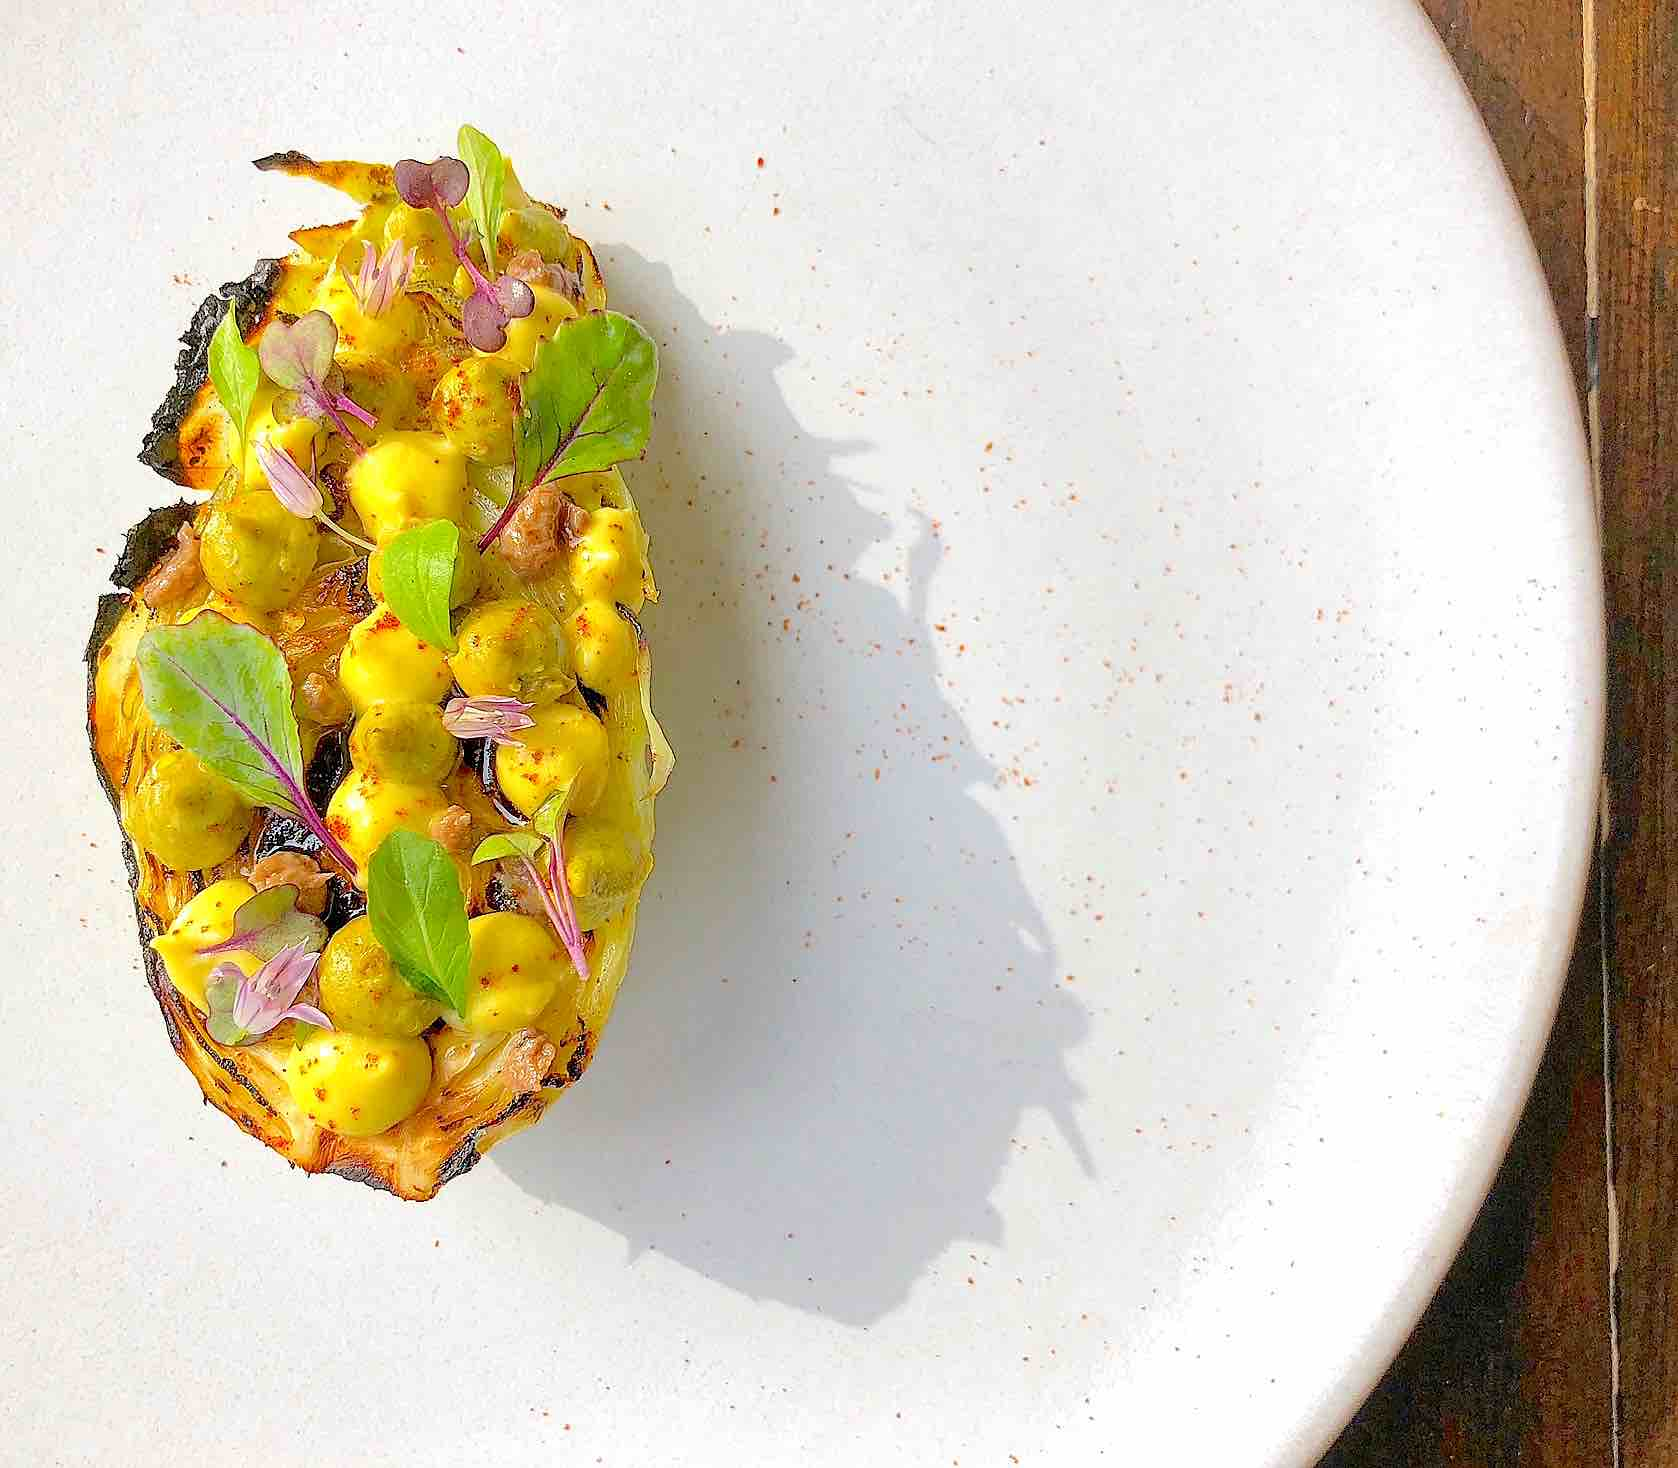 Roasted Cabbage recipe with Citrus, pistachio, Anchovy